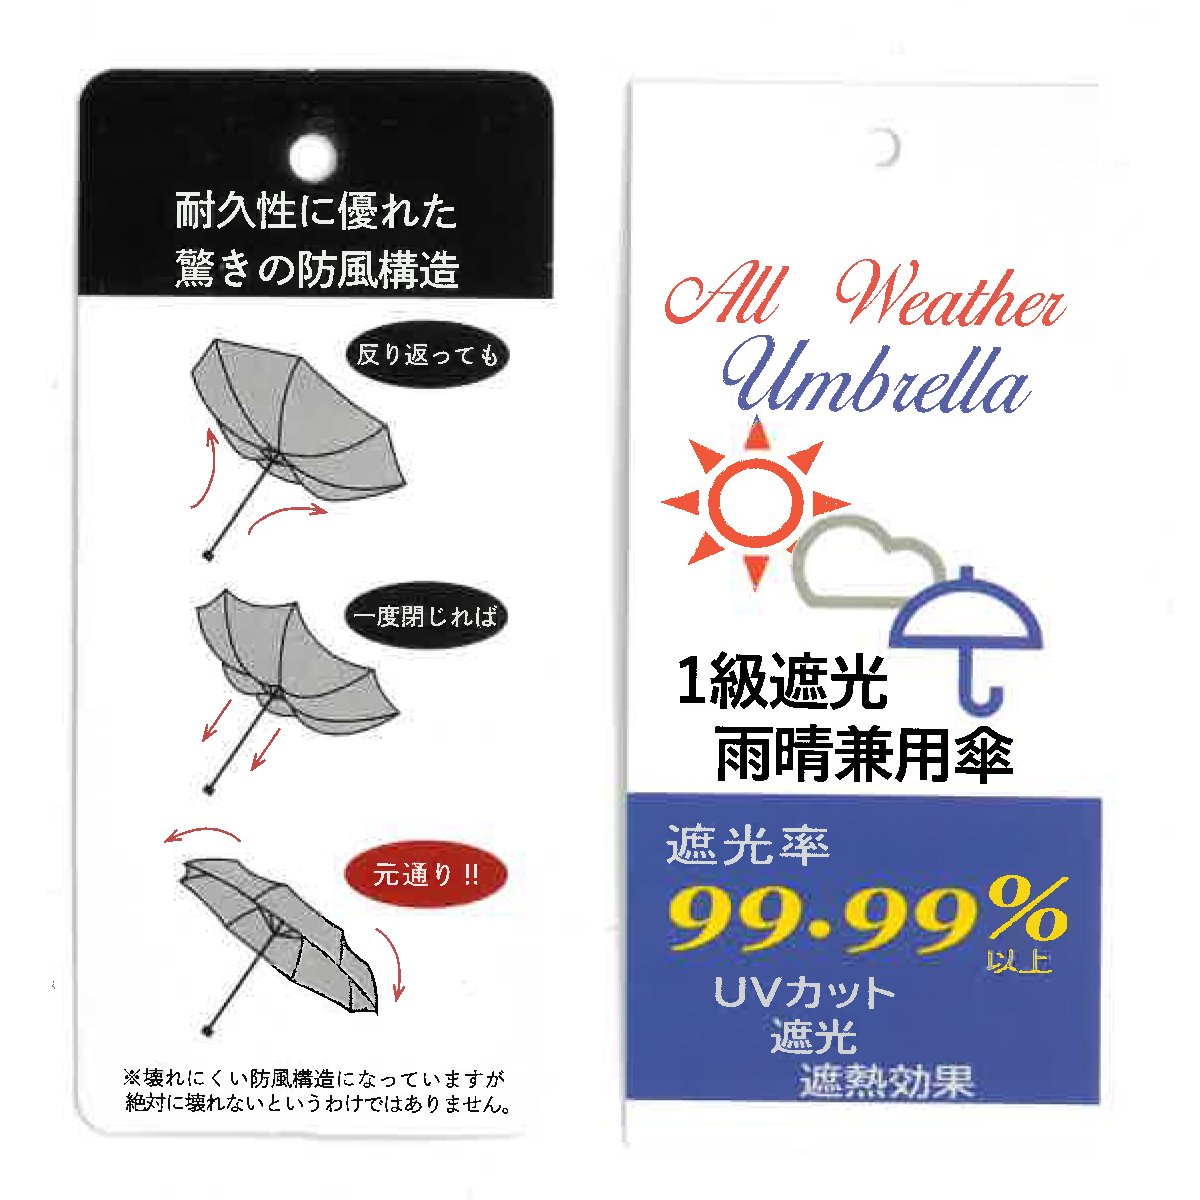 608K UV FOLDING UMBRELLA 詳細画像9